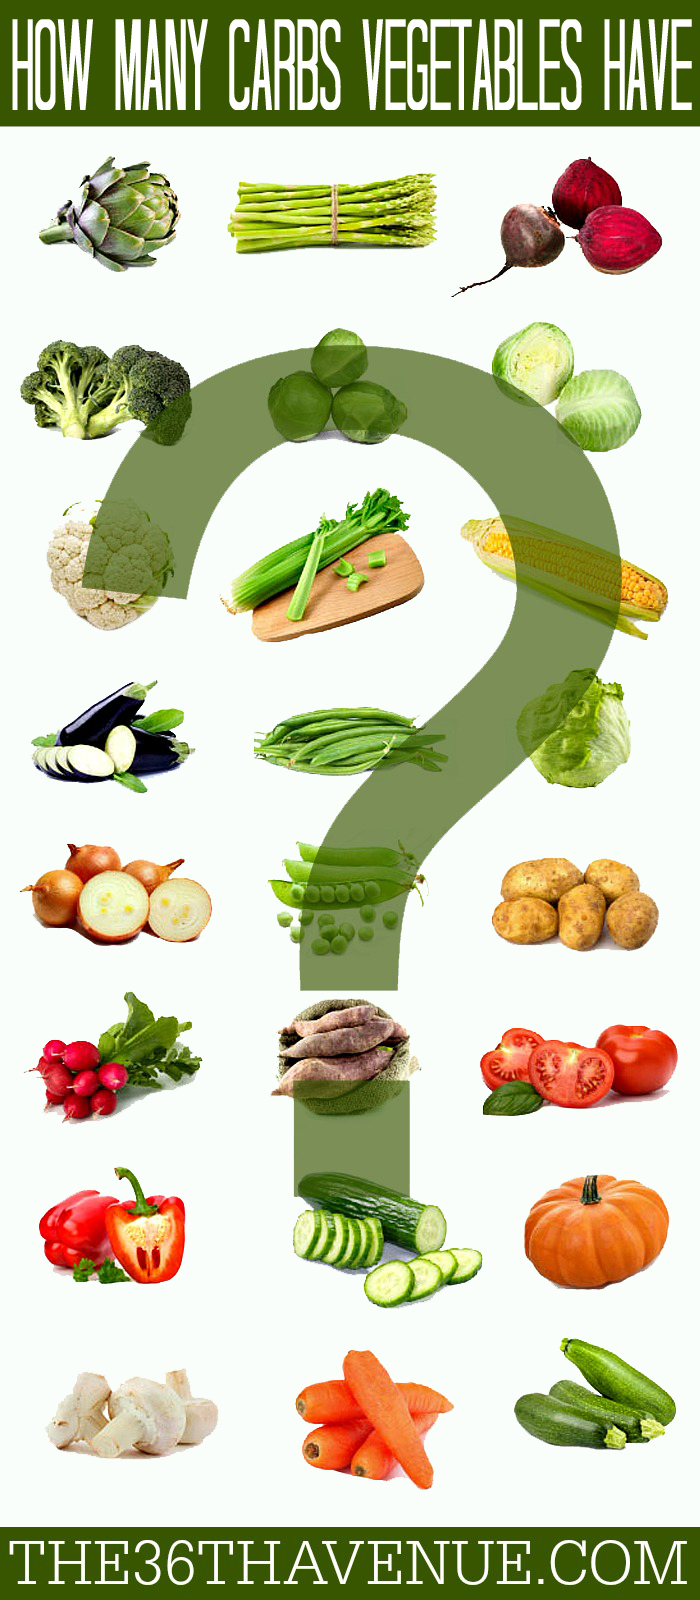 The 36th AVENUE | How many Carbs are in Vegetables? | The 36th AVENUE